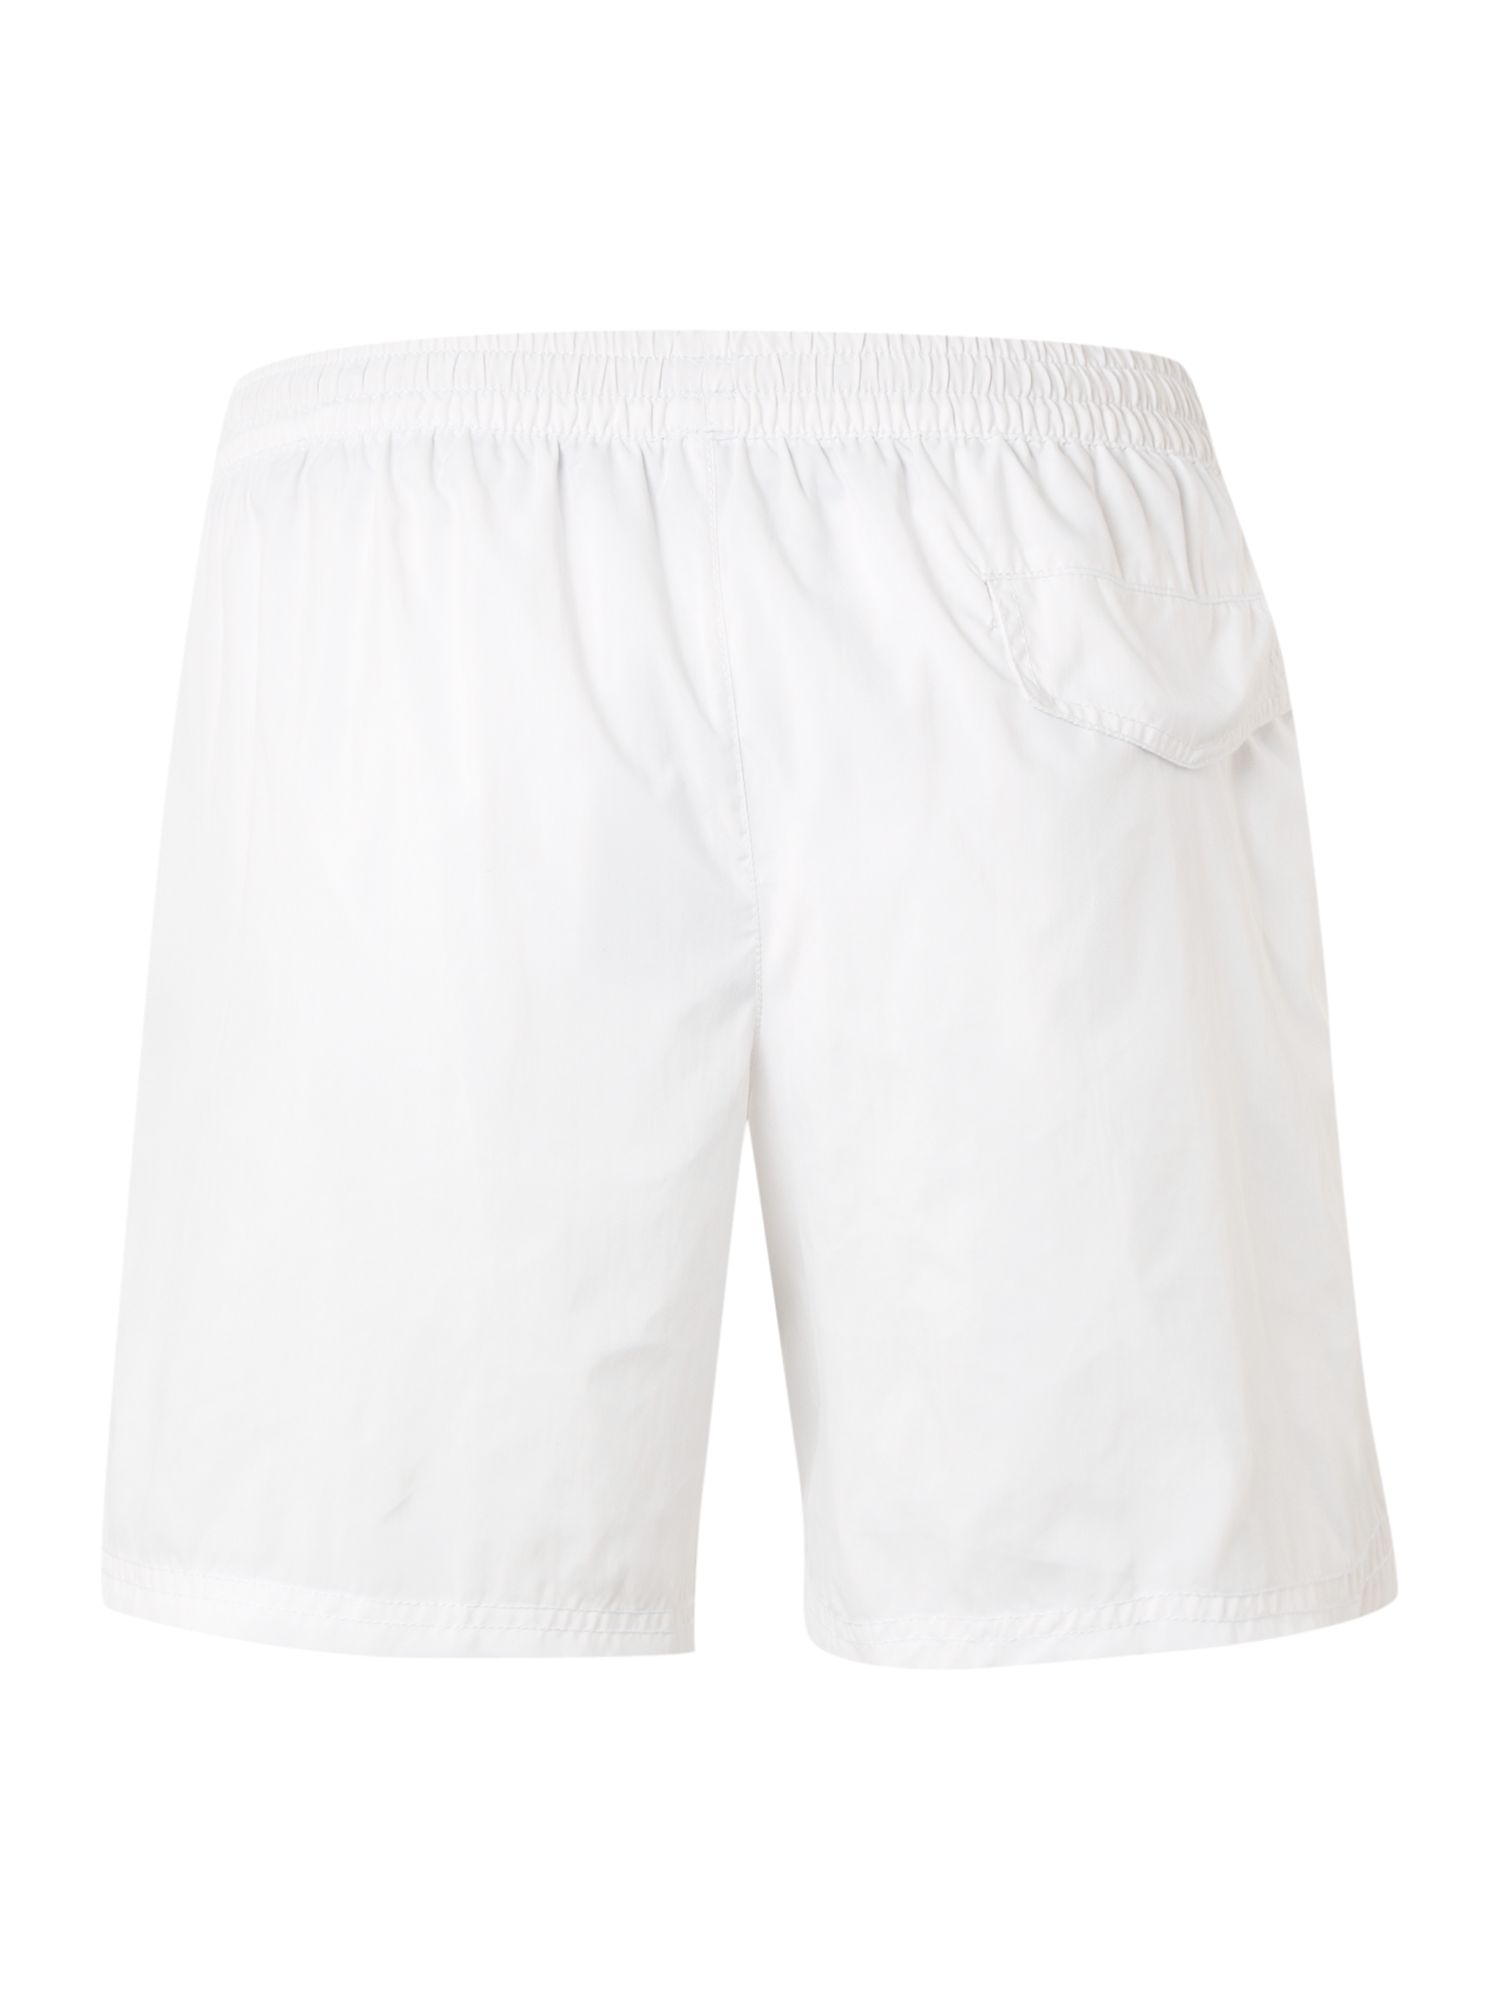 Classic swim shorts with contrast stitch trim